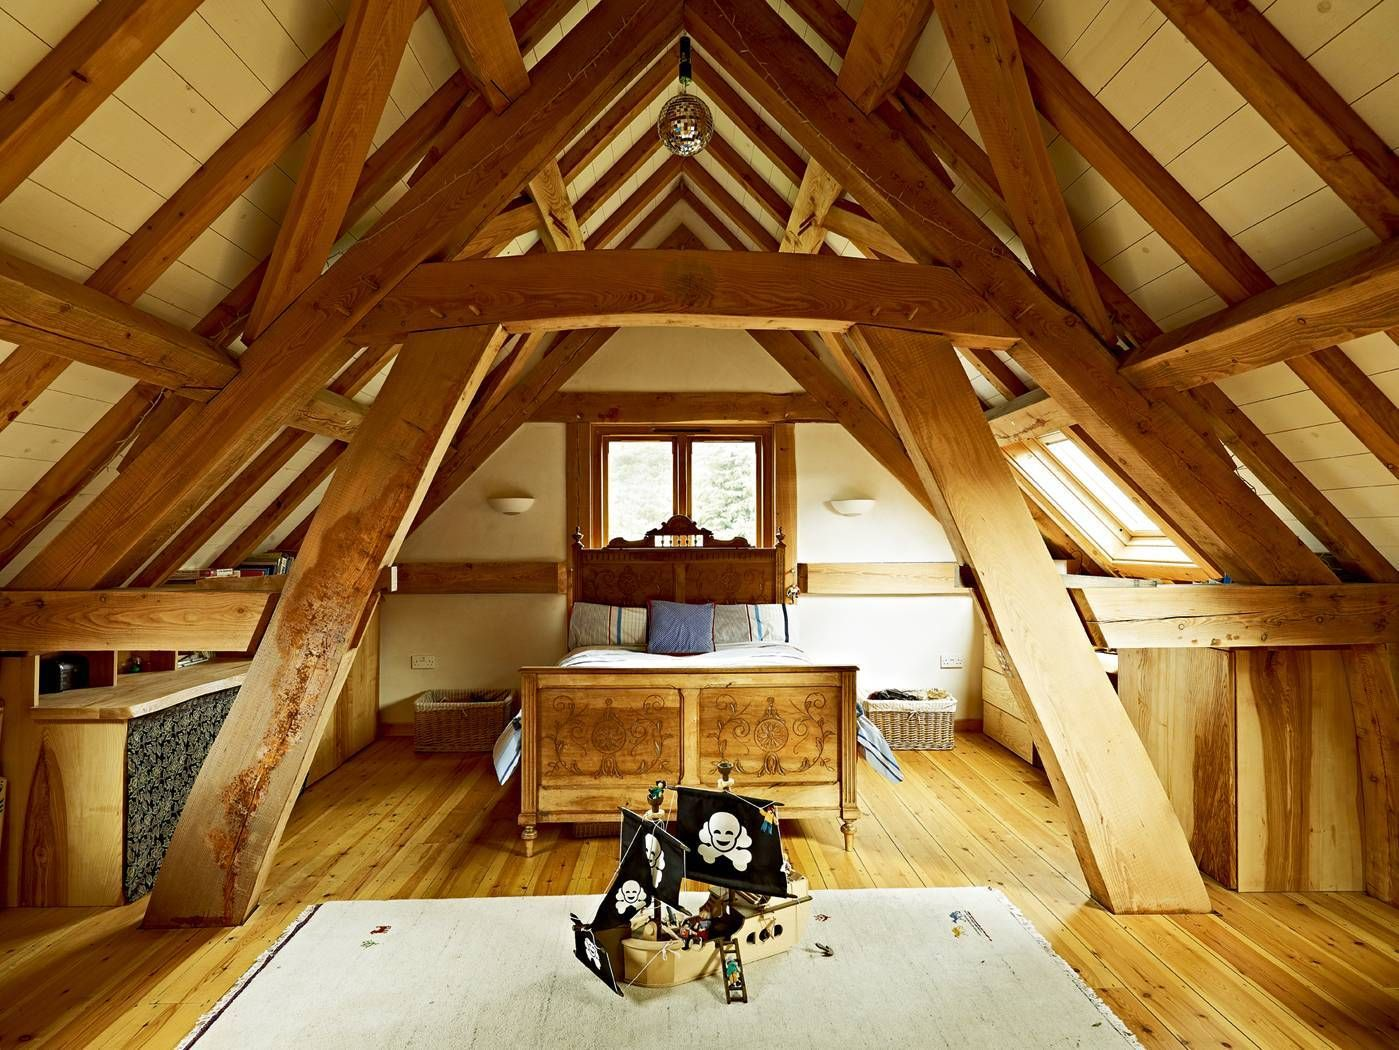 Good Low Cost Self Build. Such An Amazing Room! I Love The Exposed Beams